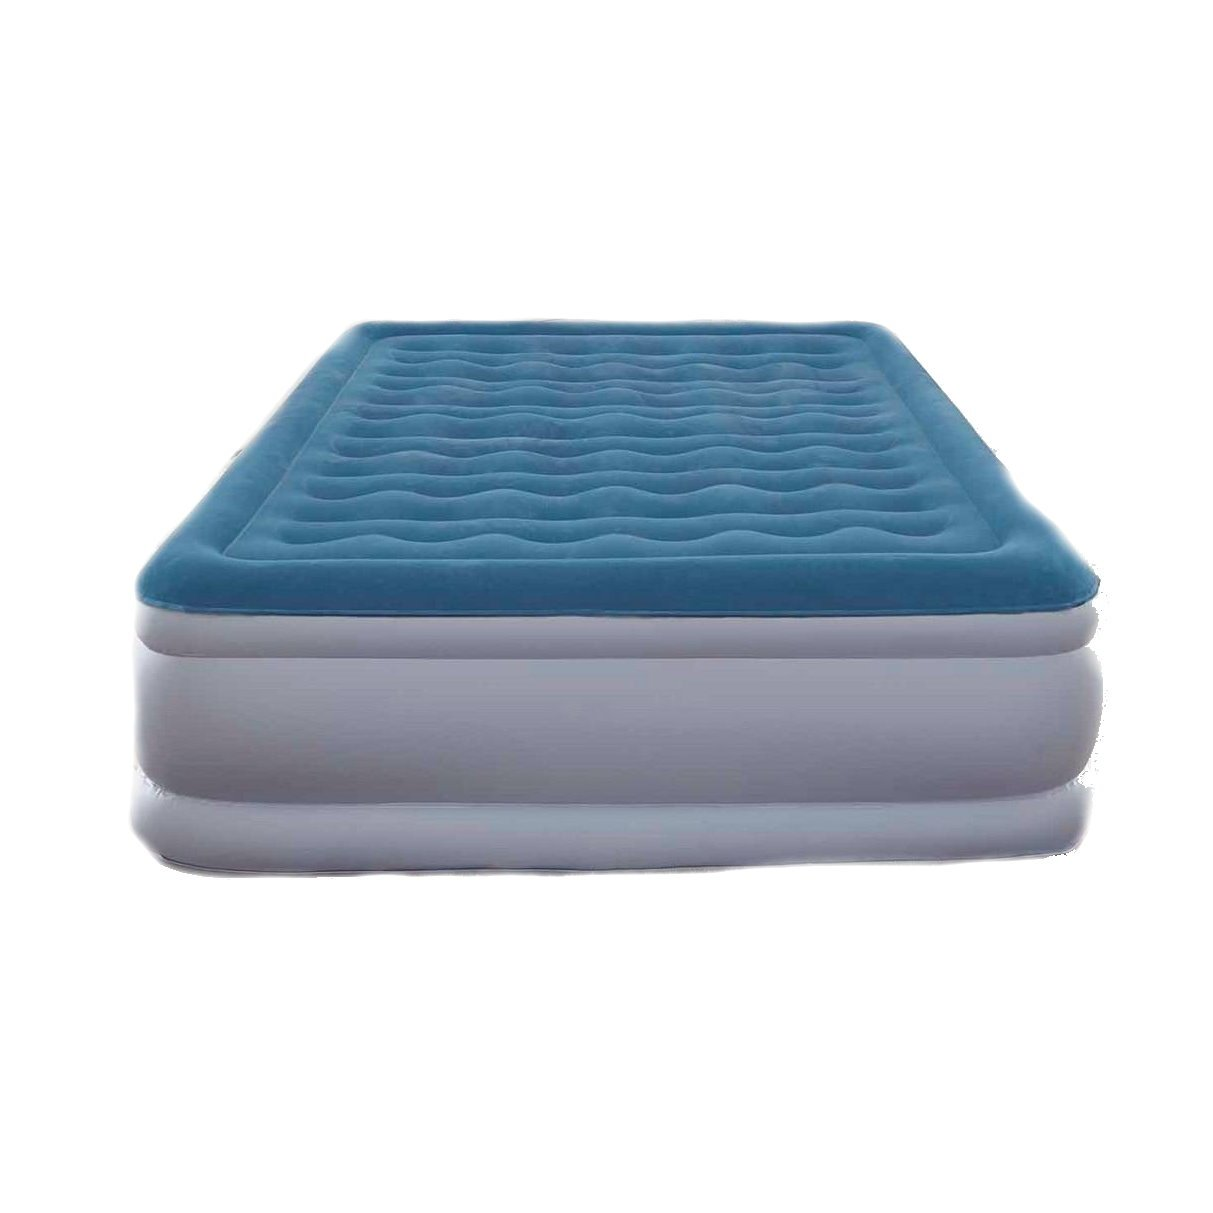 Air Mattress. This Raised Blow Up Airbed w/ Iflex & Built In Electric Pump For Rest, Deep Healthy Sleep, Adults, Indoor & Outdoor. Inflatable Bed Is Best As Camping Or Guest Bed & Sleepover (Full)